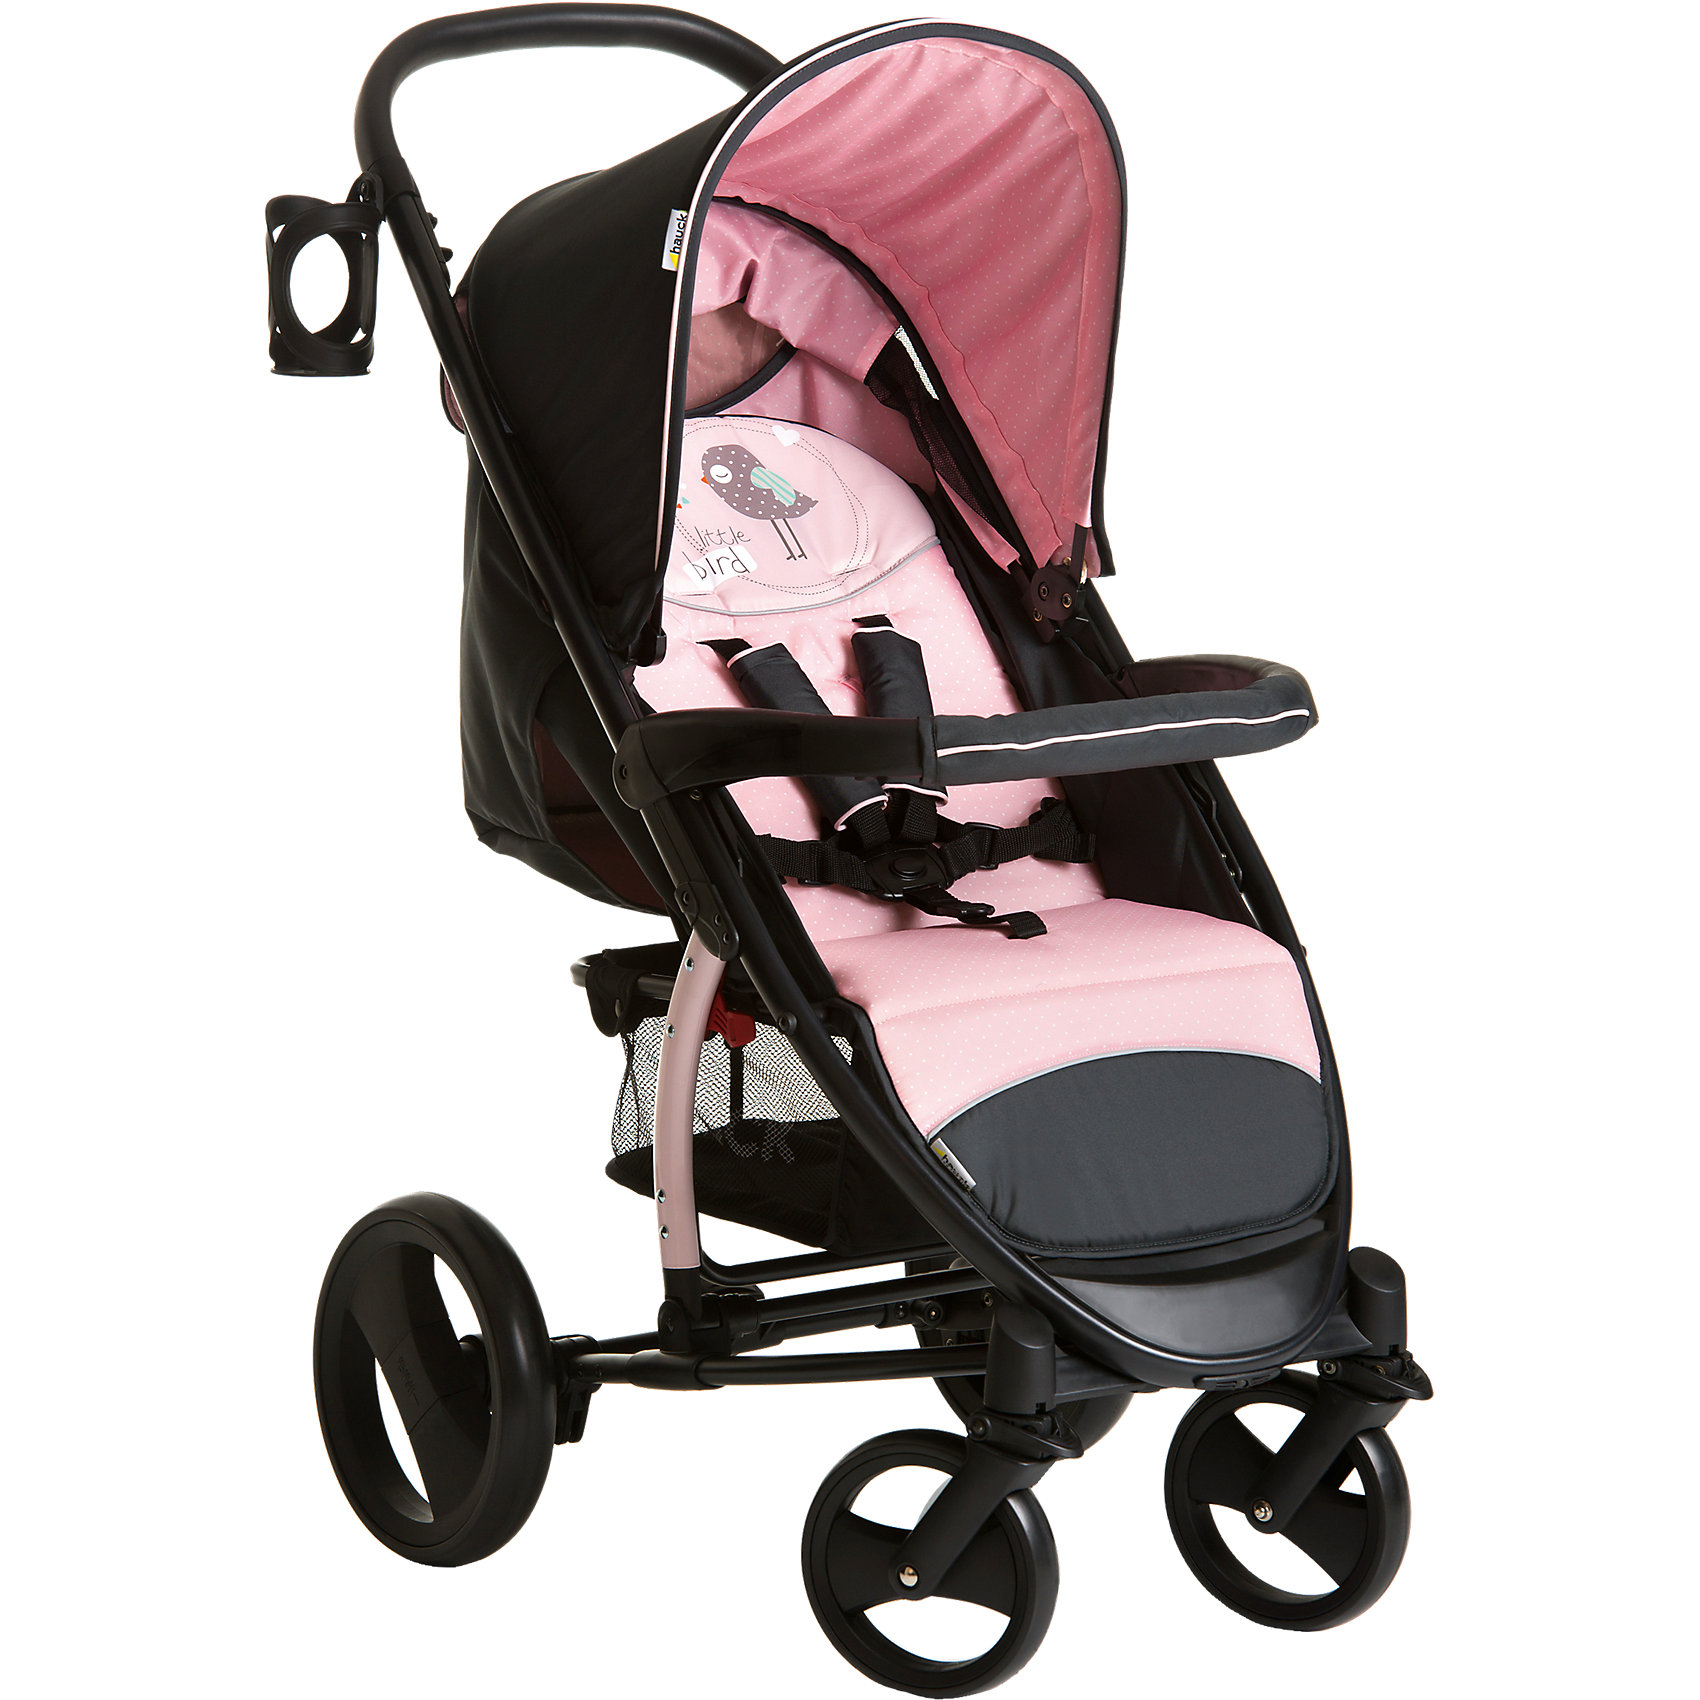 hauck Прогулочная коляска Malibu XL, Hauck, birdie прогулочная коляска cool baby kdd 6699gb t fuchsia light grey